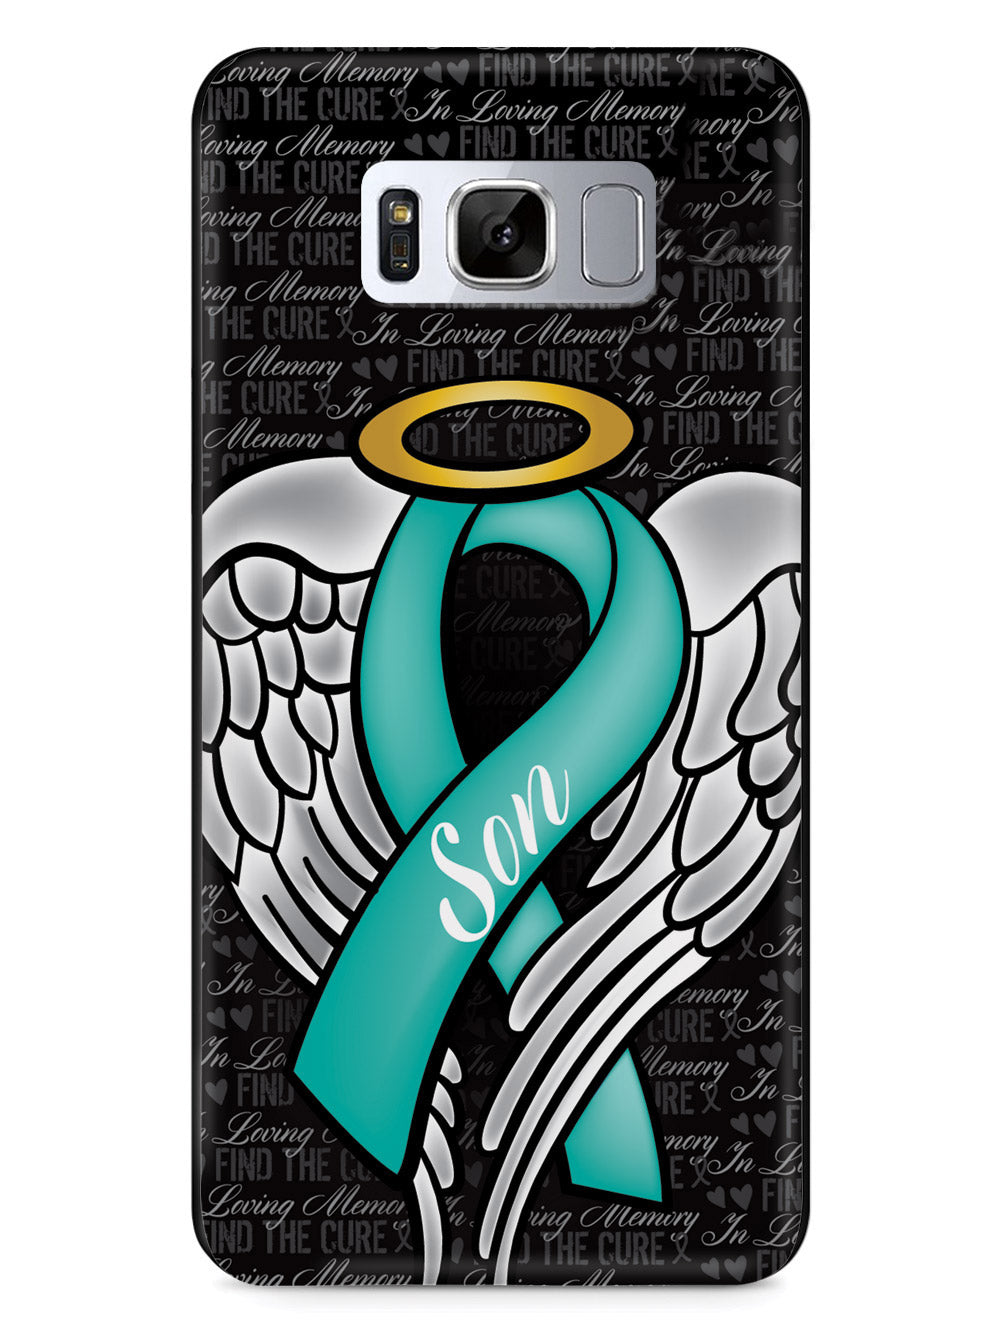 In Loving Memory of My Son - Teal Ribbon Case